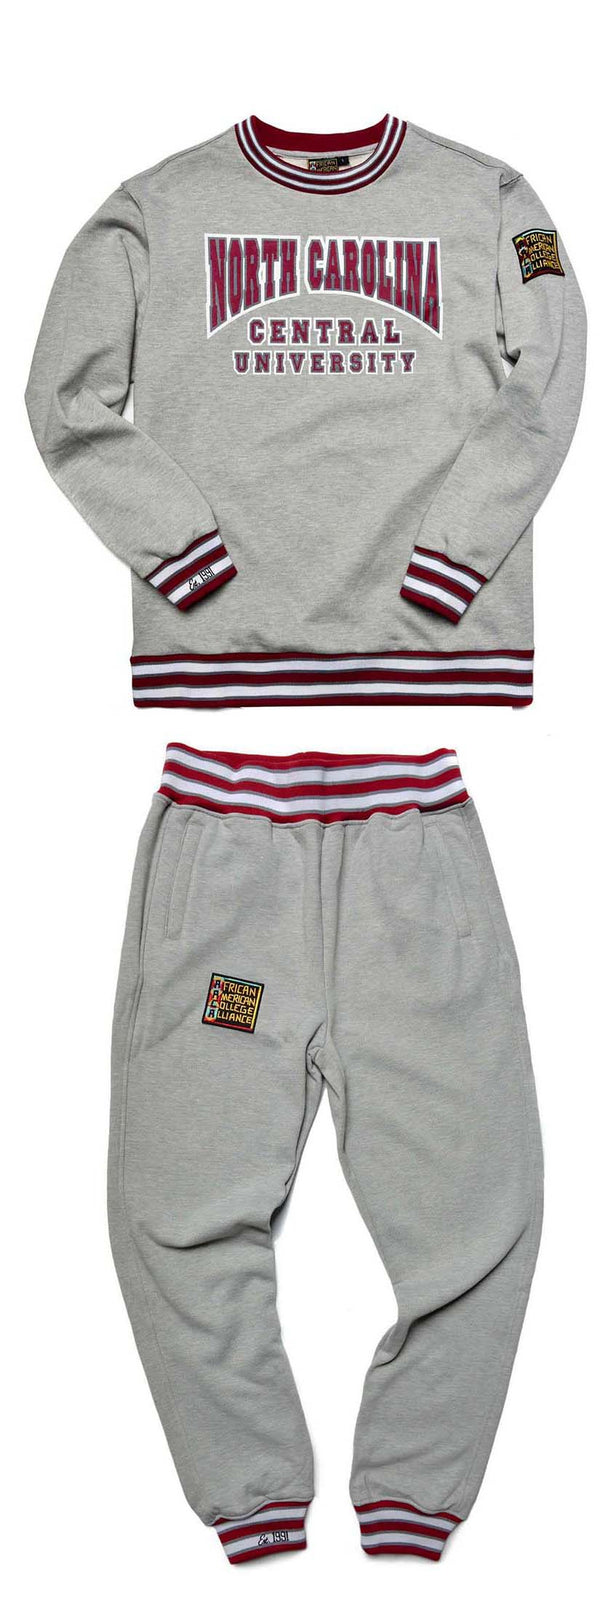 North Carolina Central University Classic '91 Crewneck Sweat Suit MDH Grey